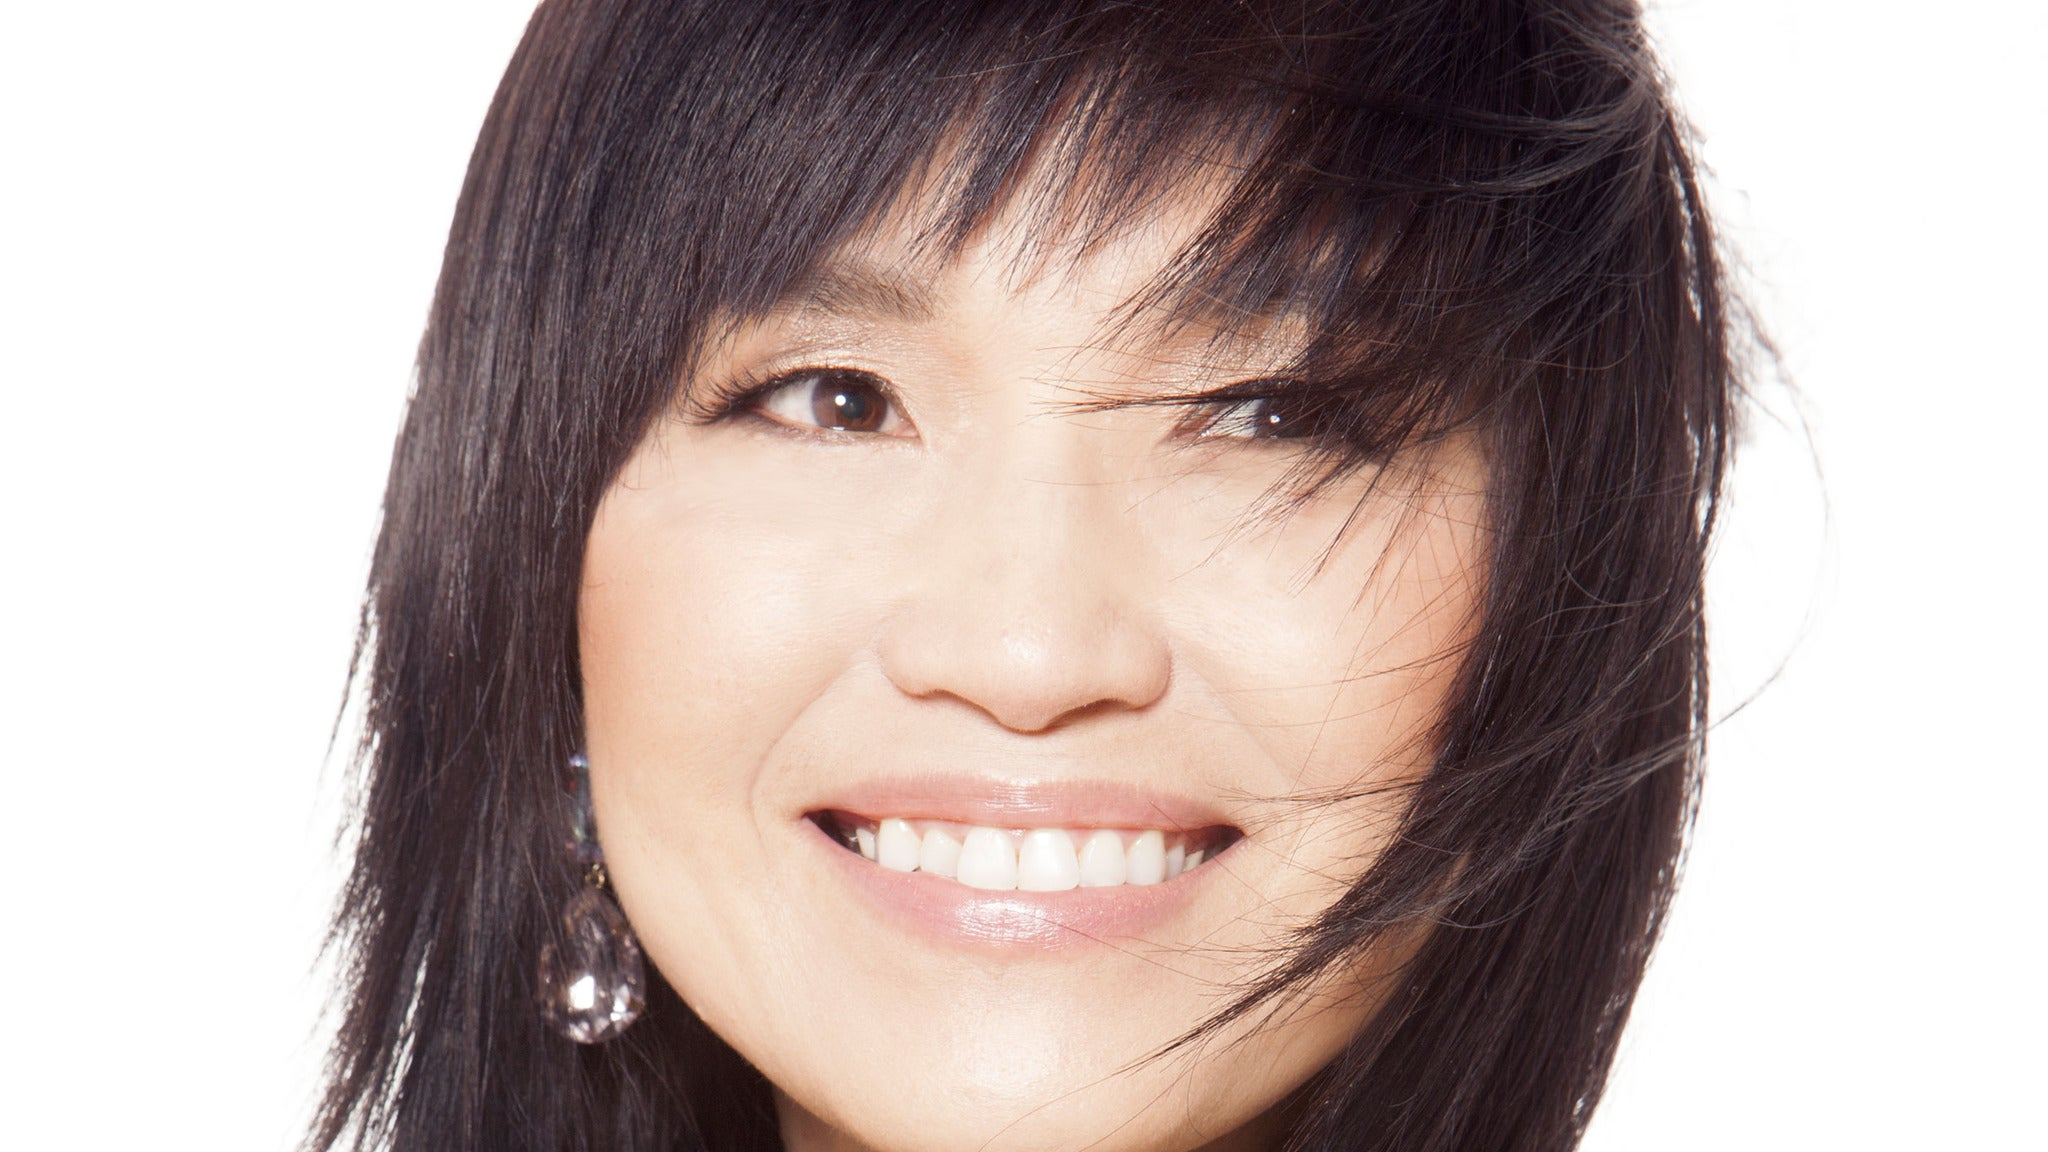 Keiko Matsui at Bankhead Theater - Livermoor Valley PAC